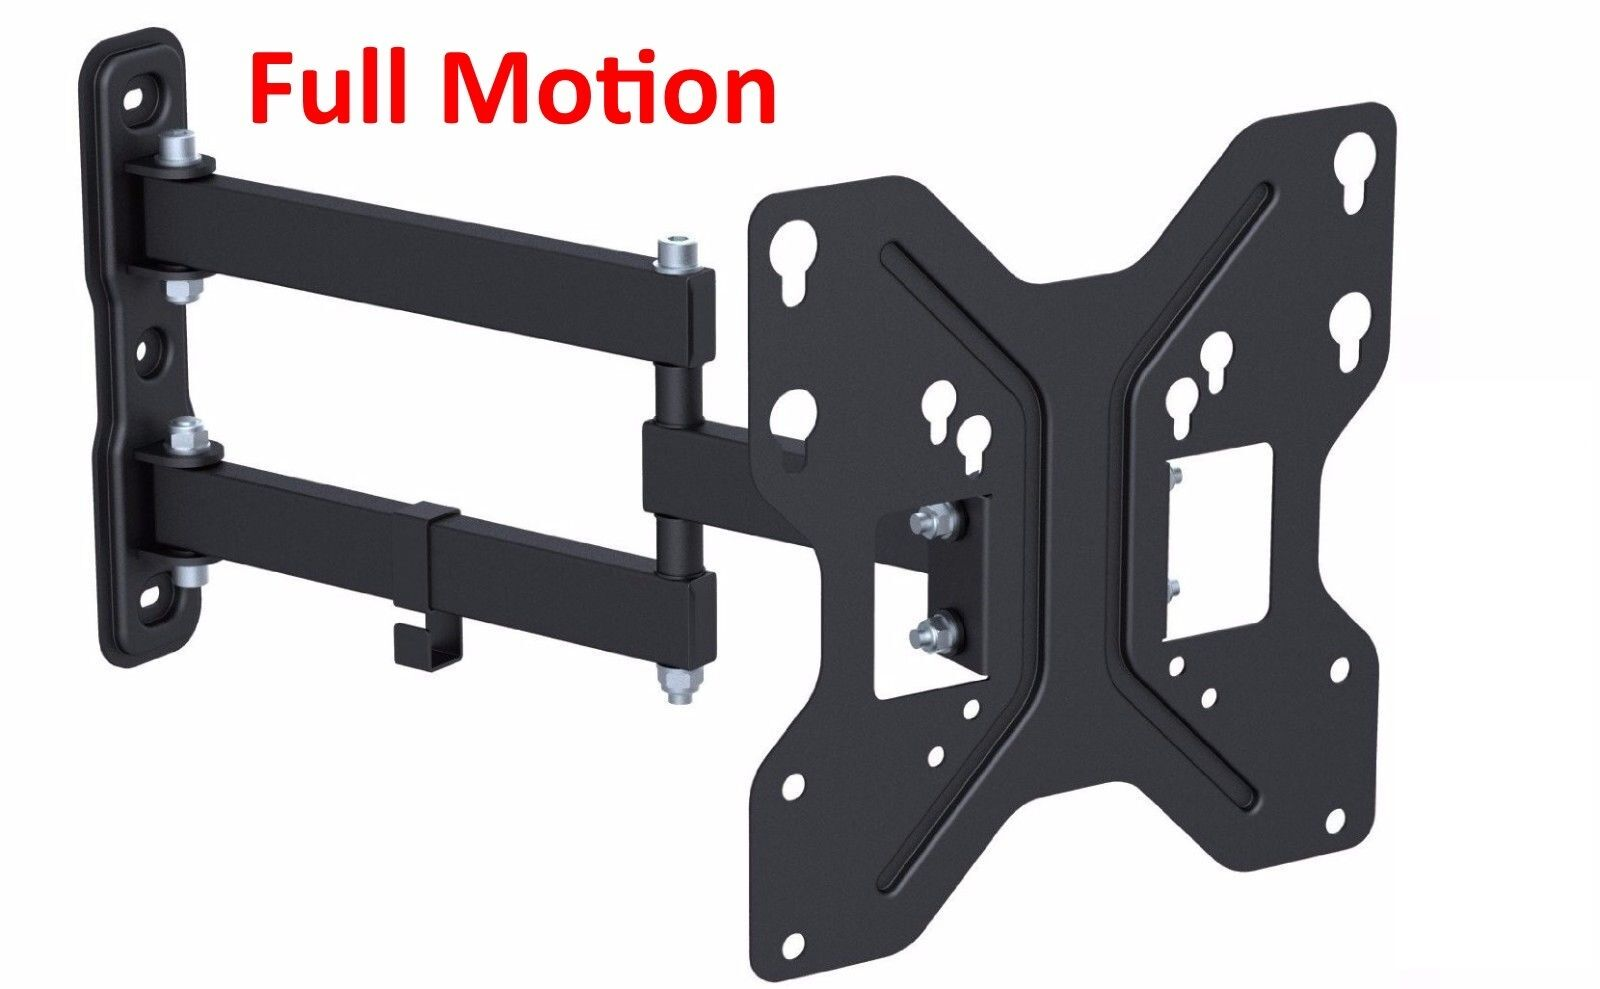 Husky Mount Full Motion TV Wall Mount Bracket Heavy Duty Art